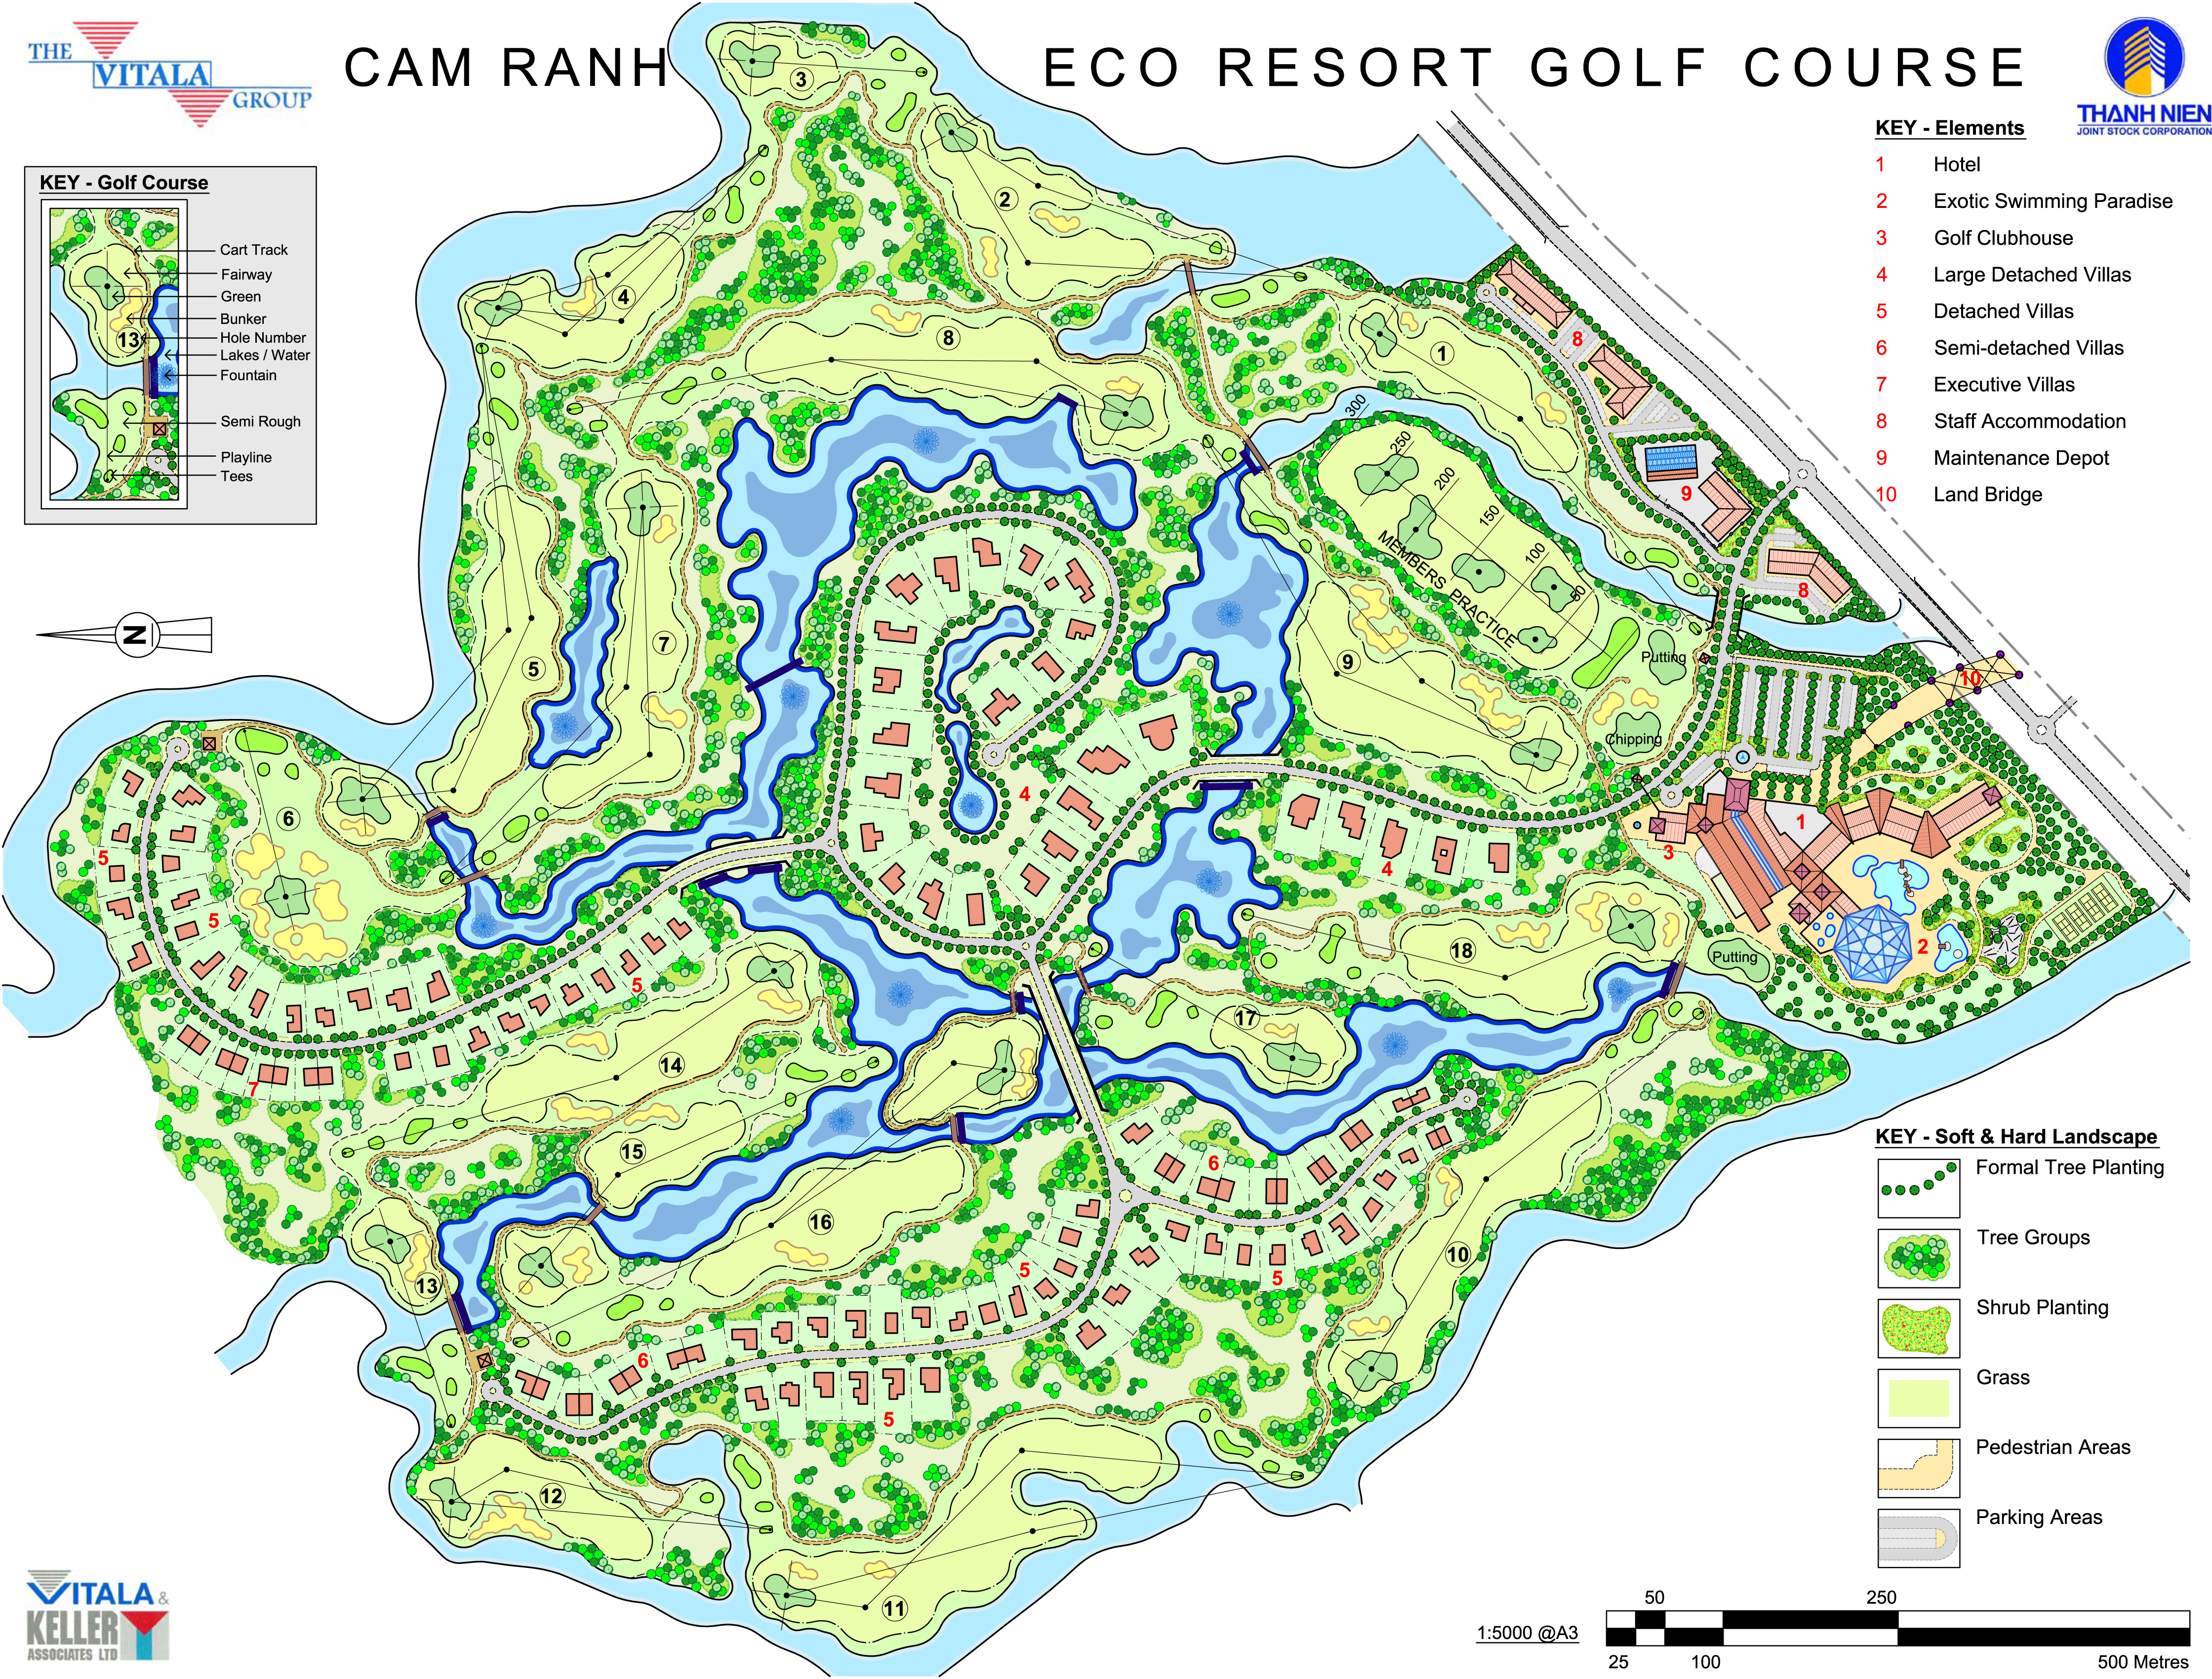 Cam Ranh Eco Resort Project Khanh Hoa Province Vietnam Golf Course Architects Golfmarnoch